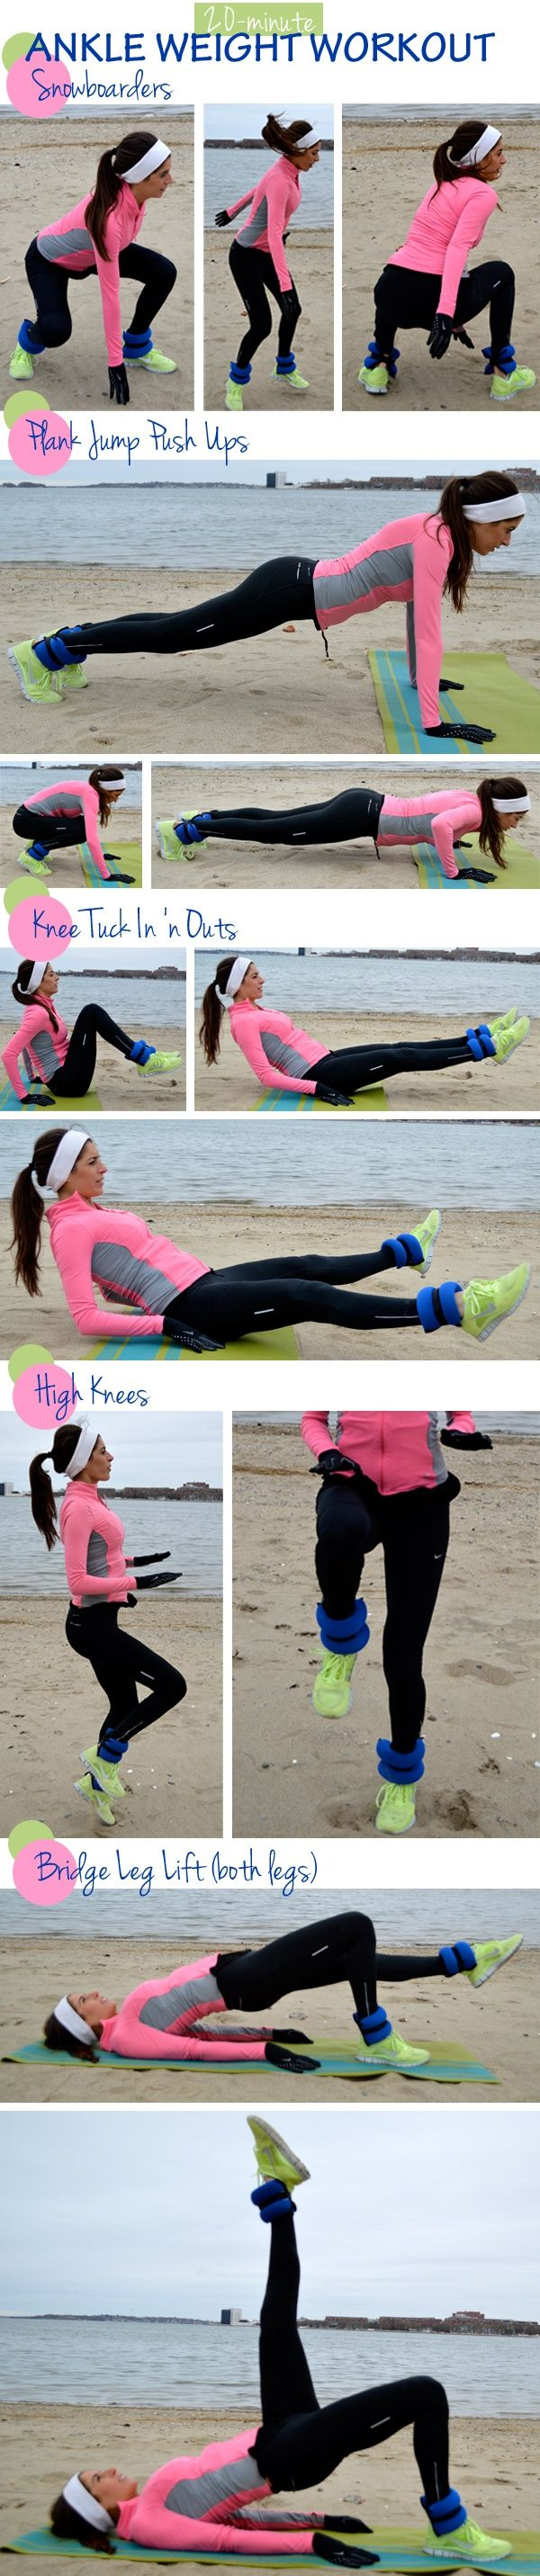 Workout with ankle weights